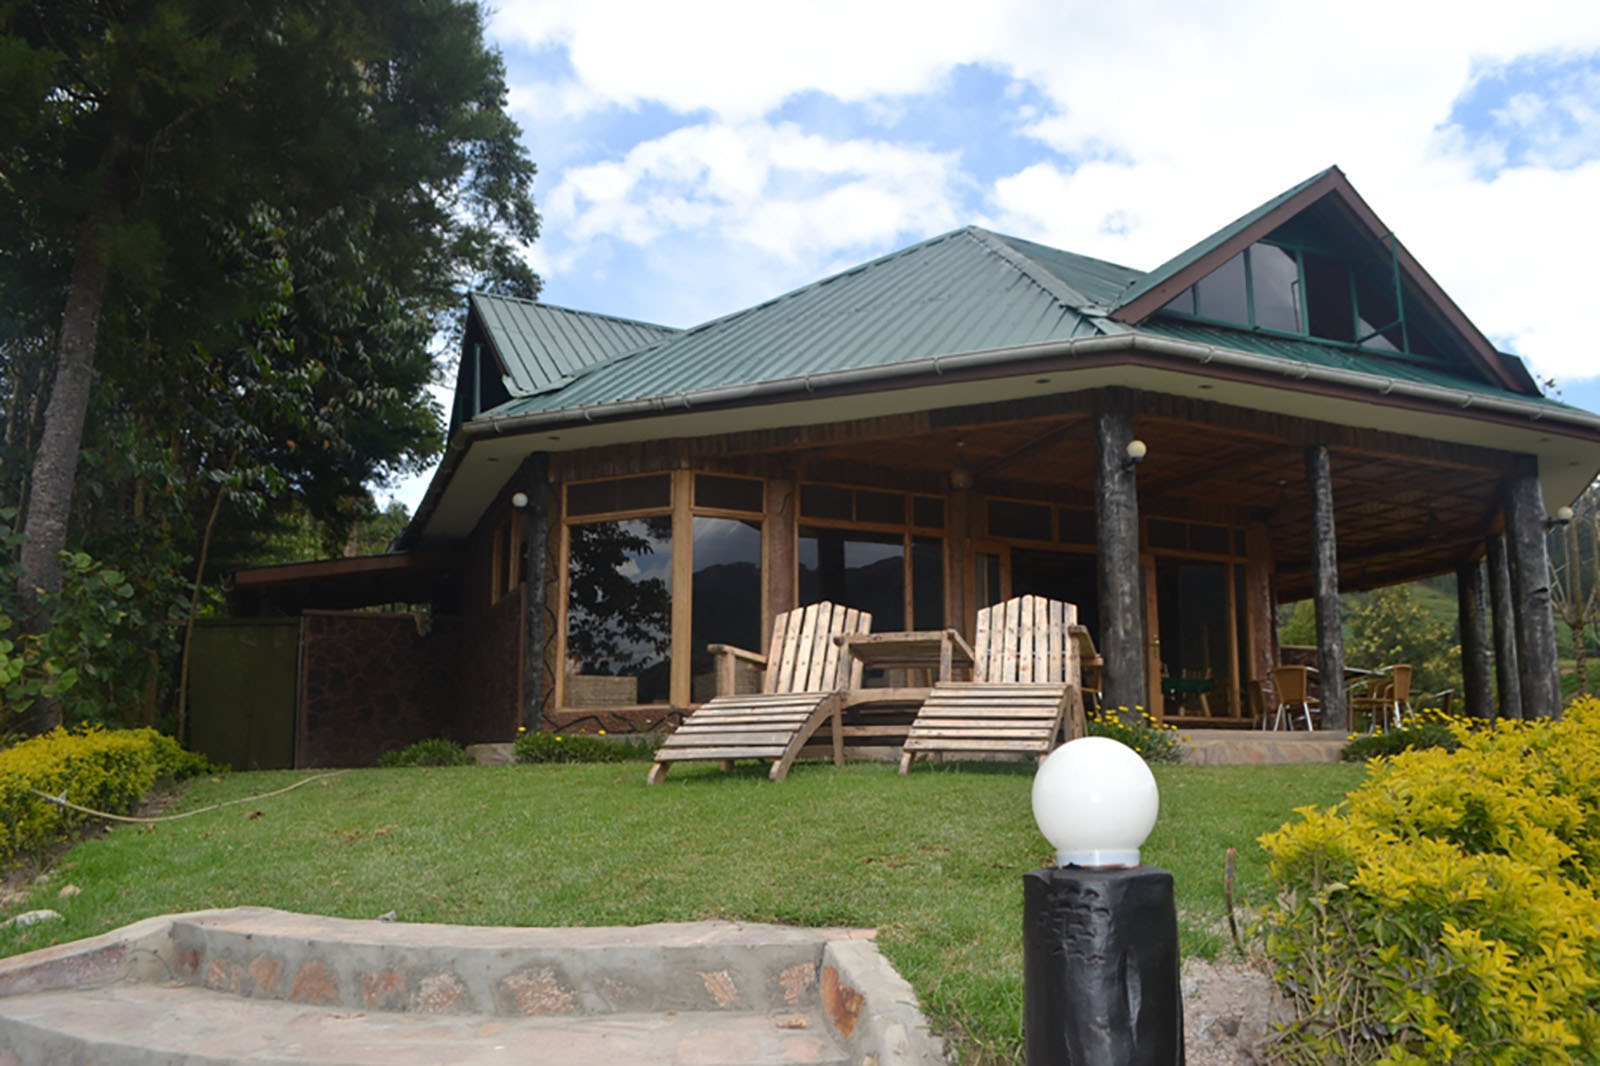 HOTEL AND LODGES RESERVATIONS